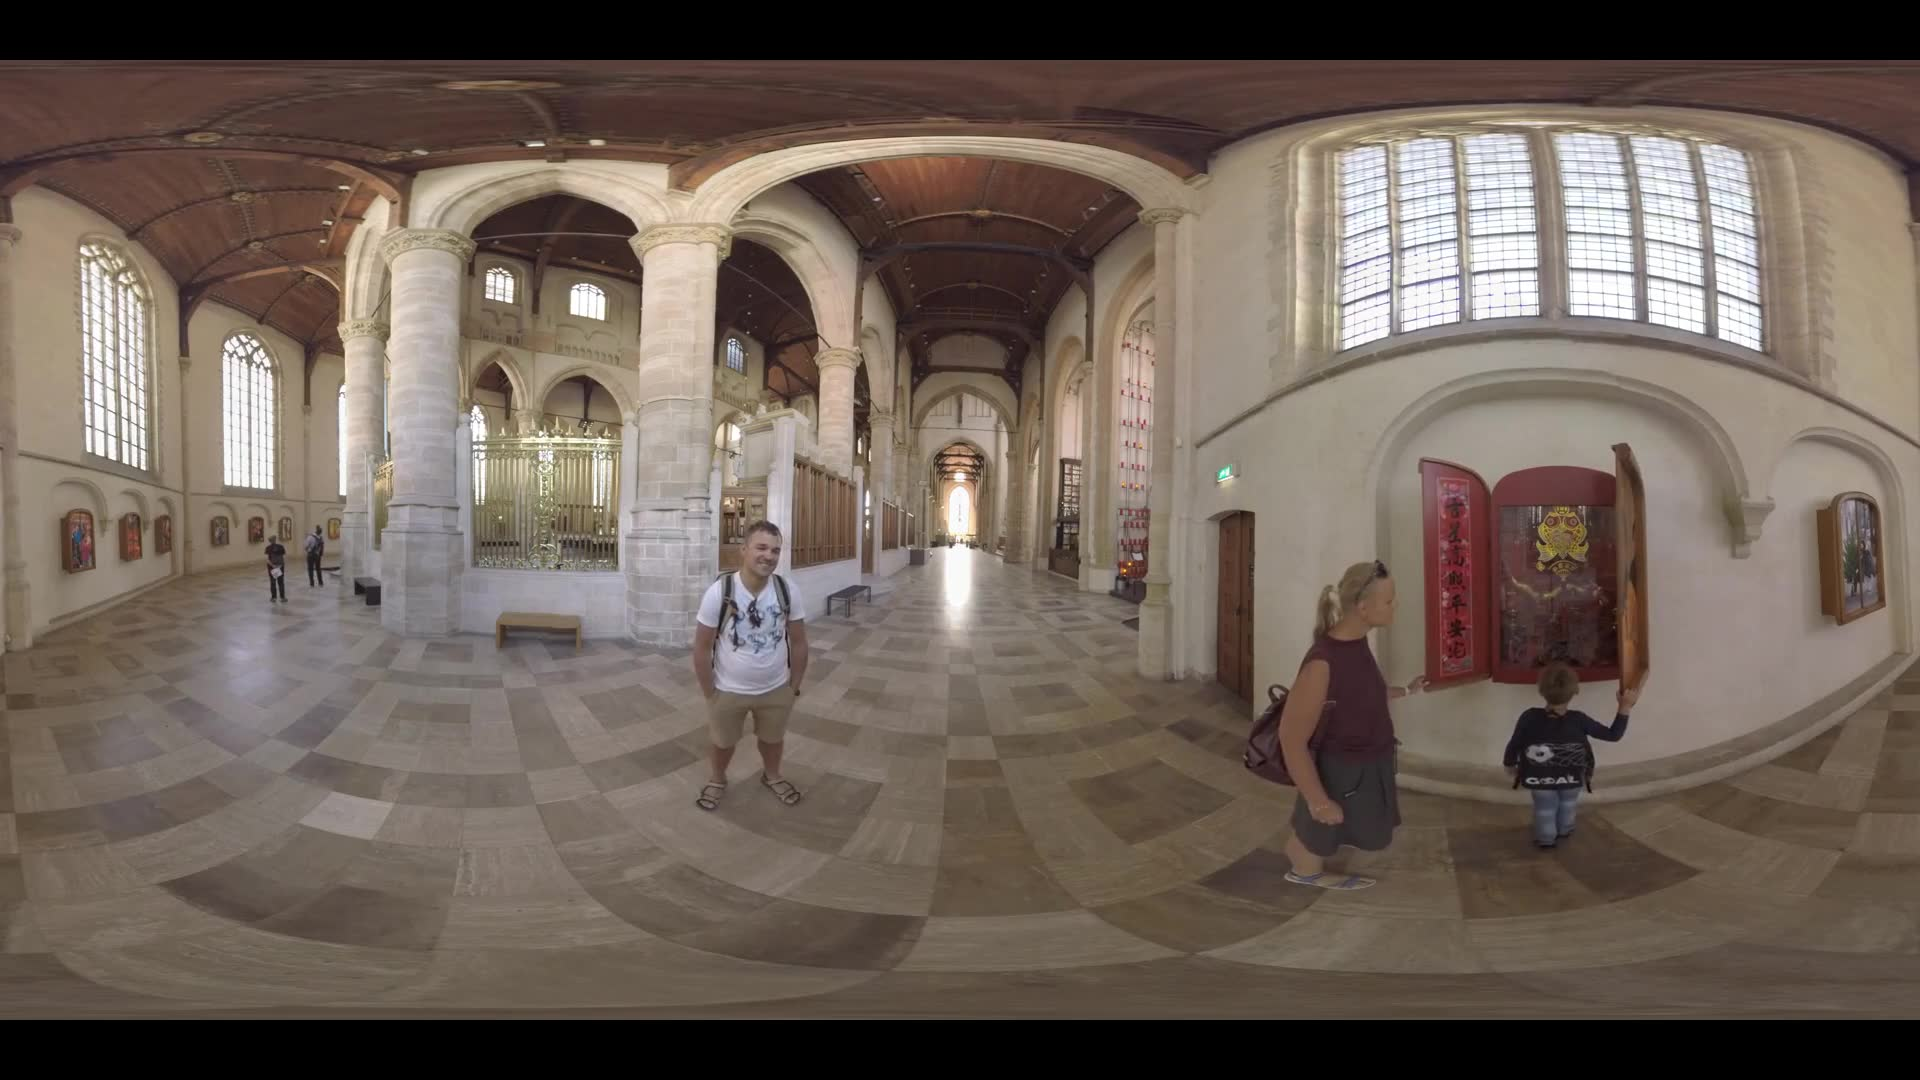 360 VR video. Parents with child (with model release) and other visitors opening shutters and looking at installations of different cultures and holidays inside St. Lawrence Church